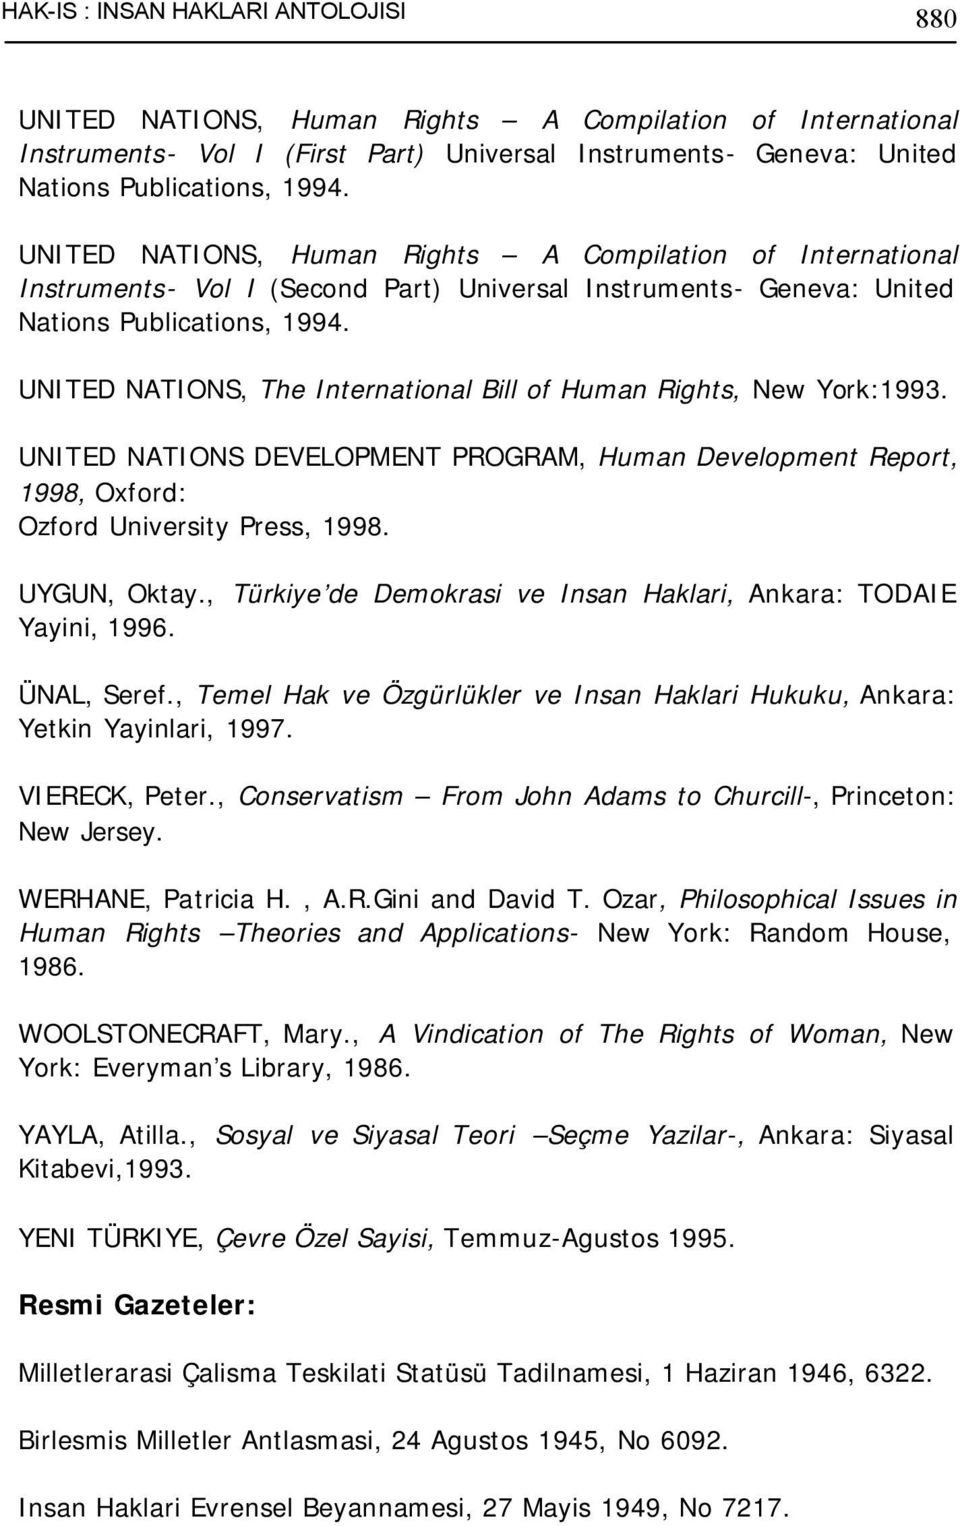 UNITED NATIONS, The International Bill of Human Rights, New York:1993. UNITED NATIONS DEVELOPMENT PROGRAM, Human Development Report, 1998, Oxford: Ozford University Press, 1998. UYGUN, Oktay.